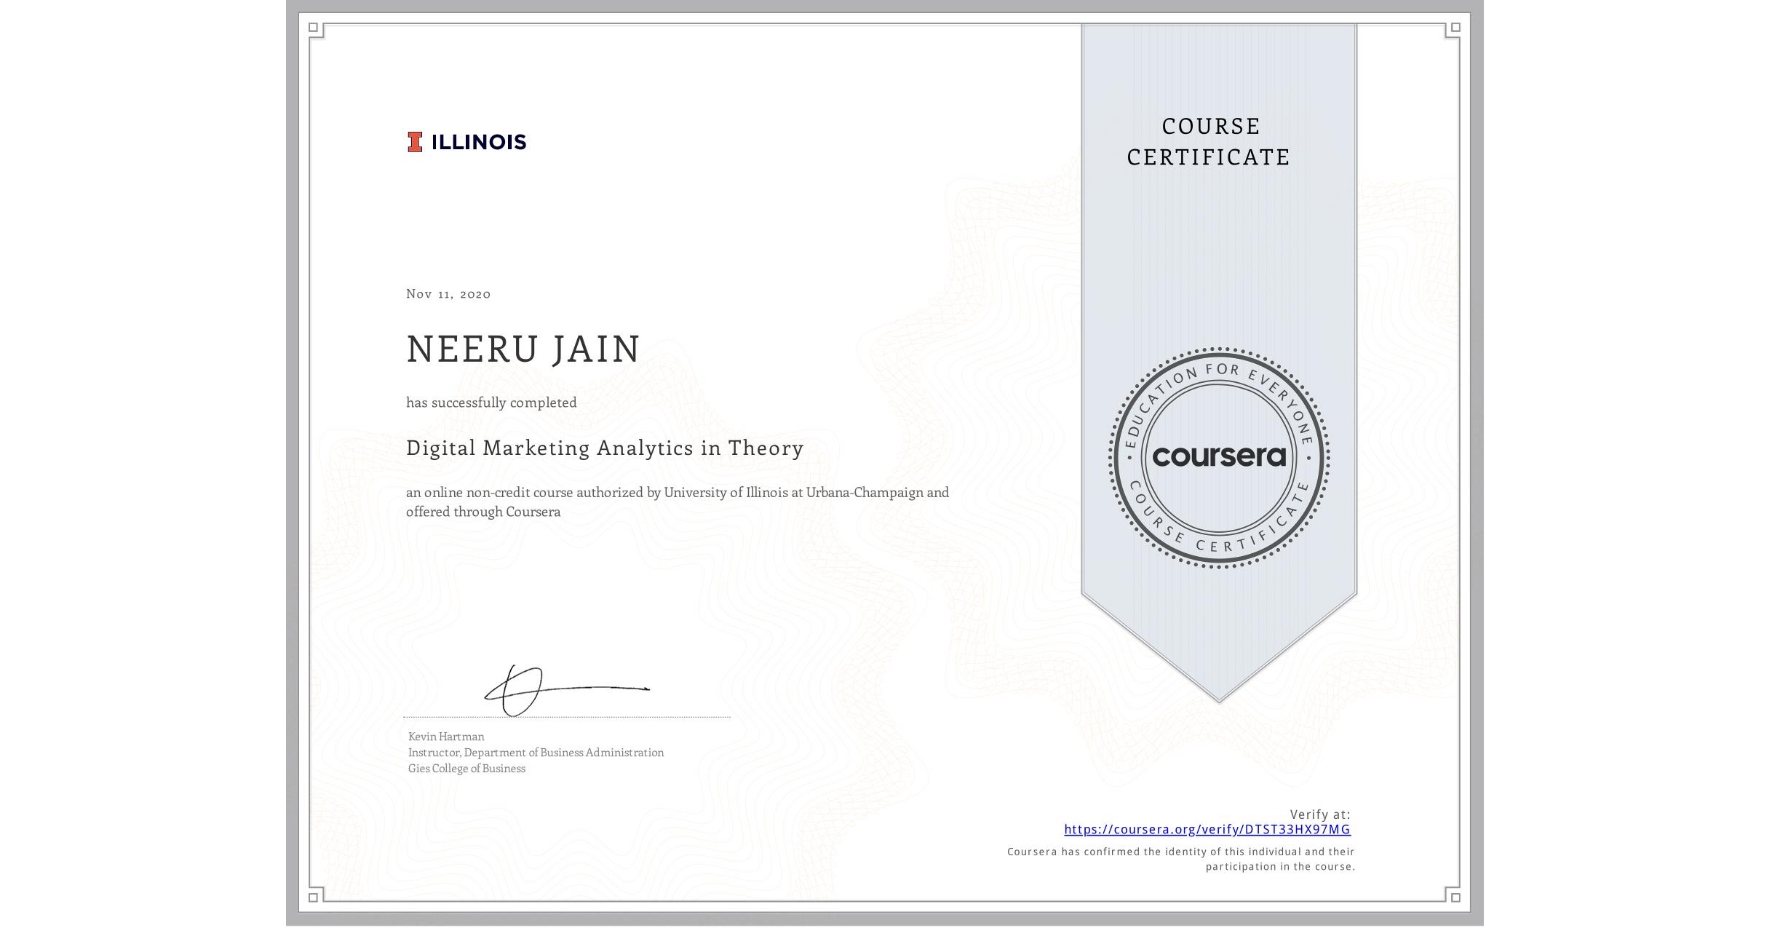 View certificate for NEERU JAIN, Digital Marketing Analytics in Theory, an online non-credit course authorized by University of Illinois at Urbana-Champaign and offered through Coursera